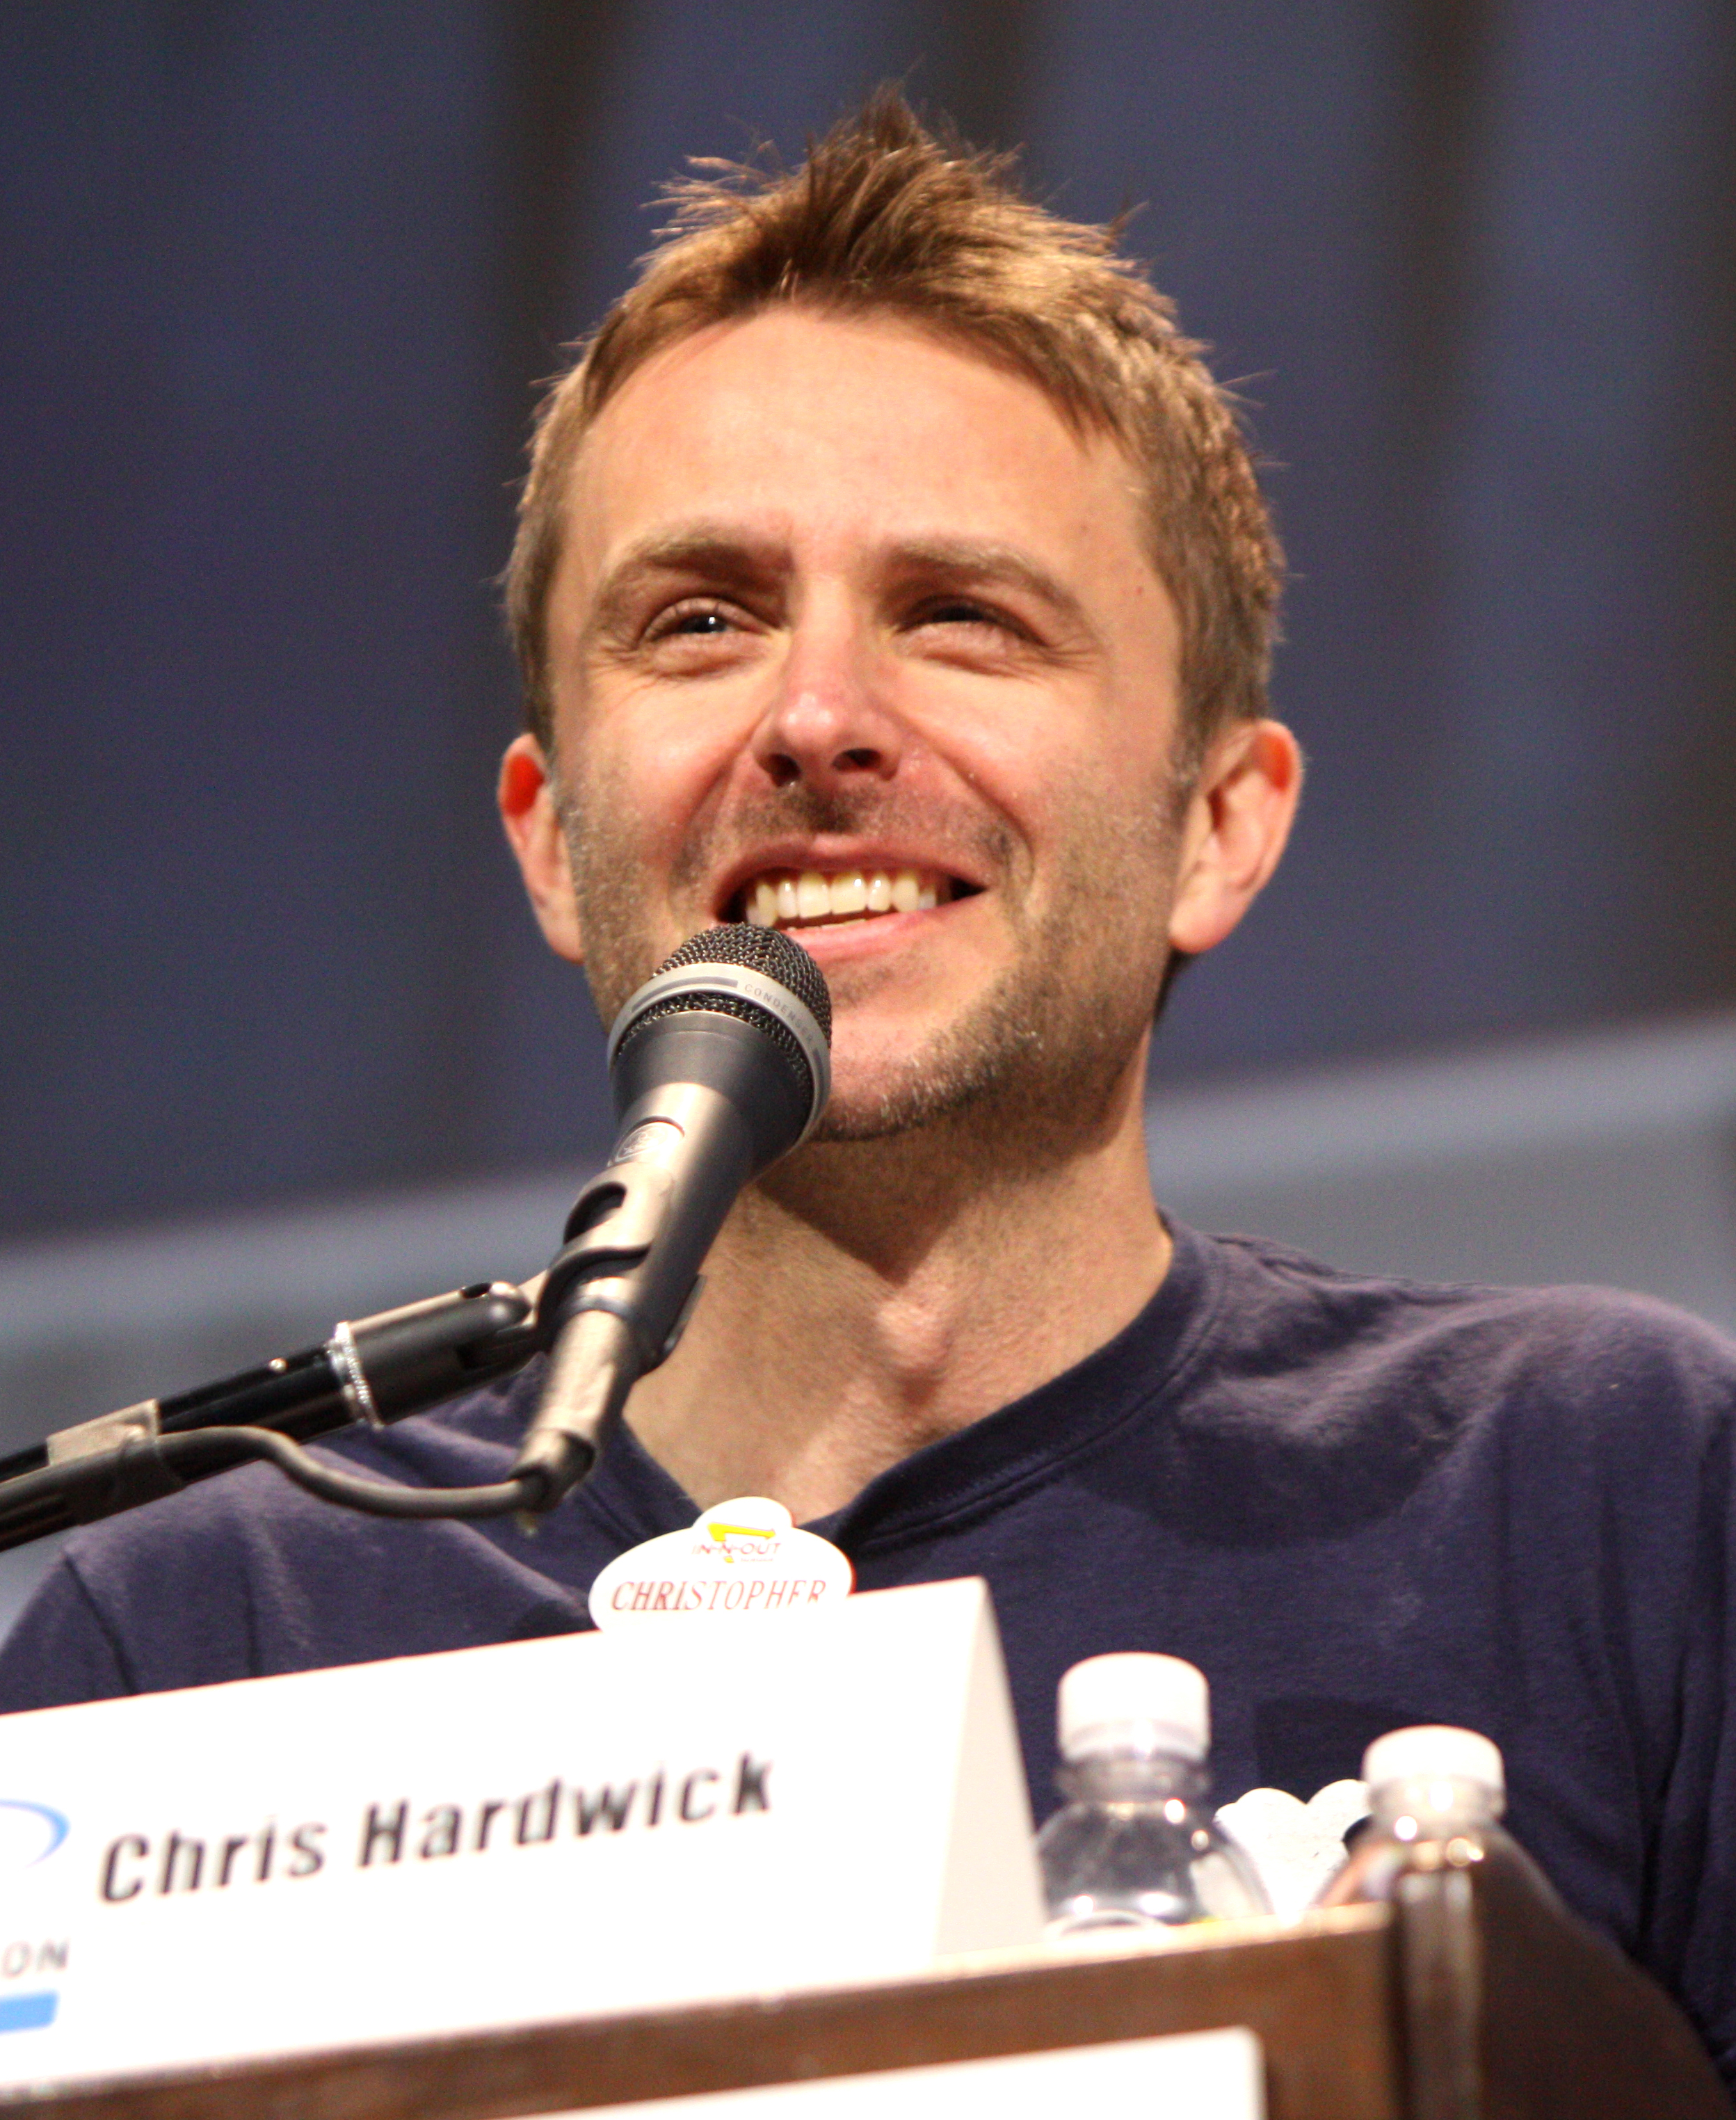 The 46-year old son of father Billy Hardwick and mother Sharon Hills Chris Hardwick in 2018 photo. Chris Hardwick earned a  million dollar salary - leaving the net worth at 10 million in 2018